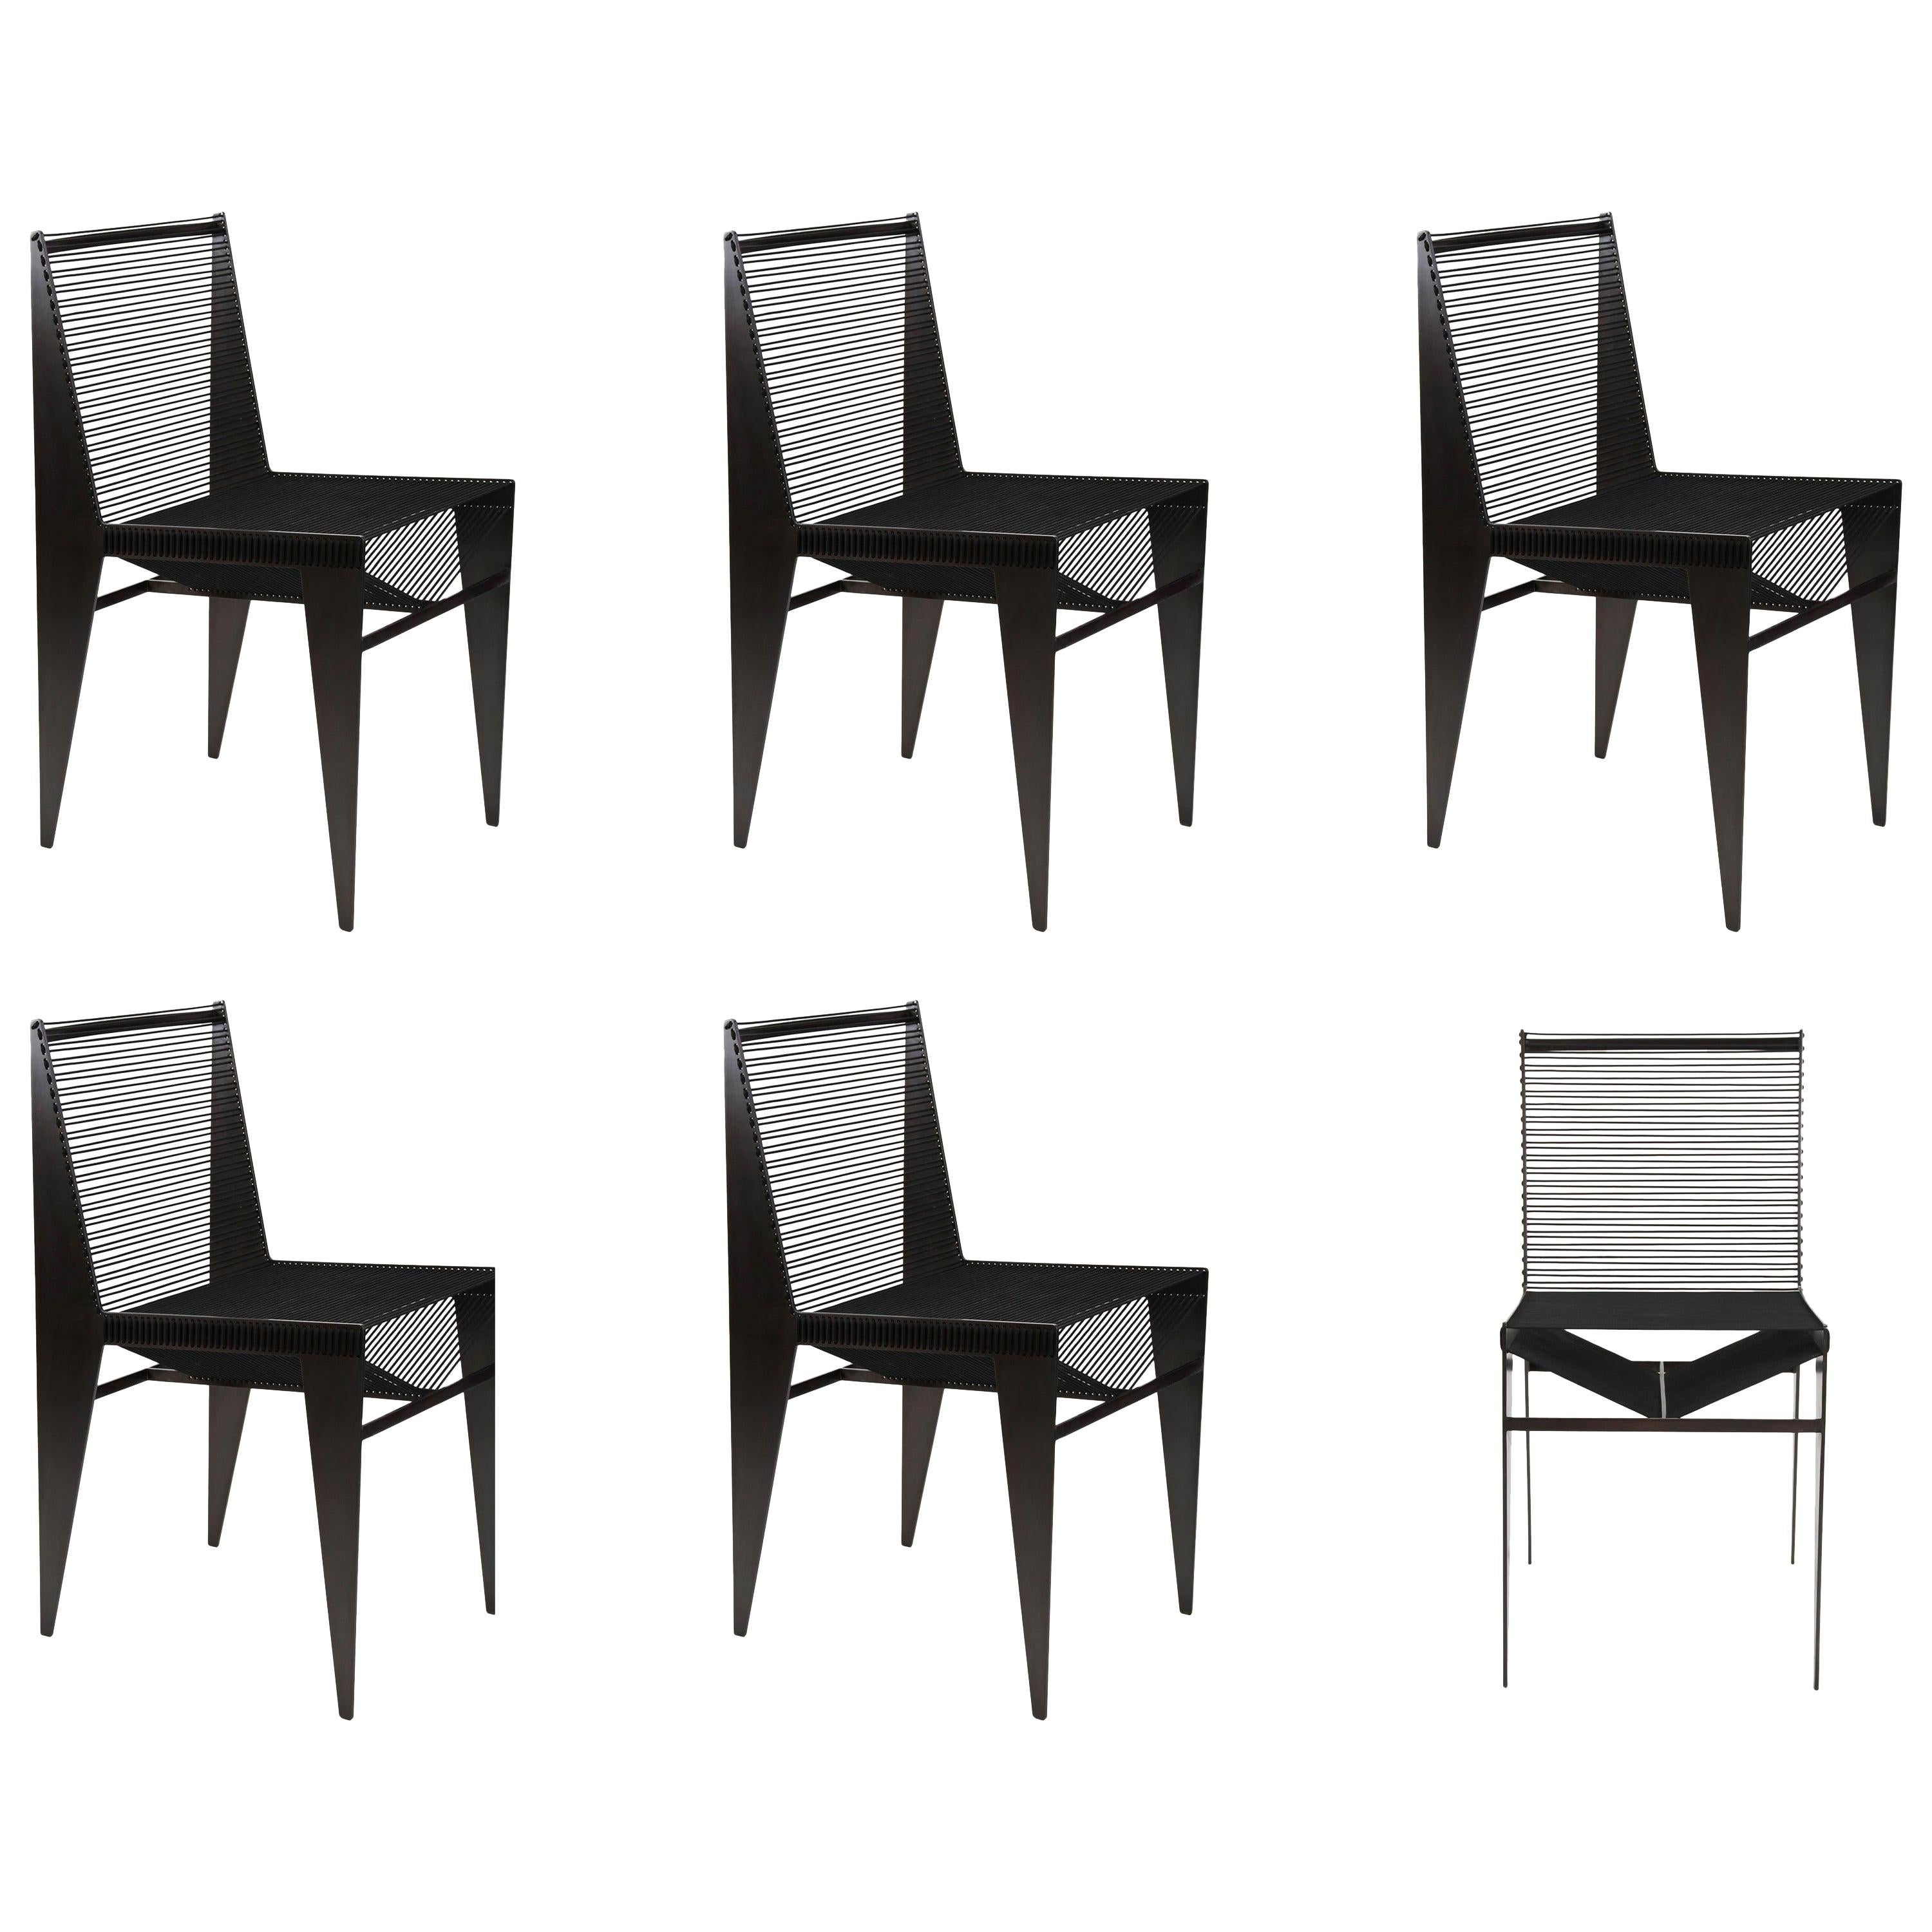 Set of 6, ICON Chairs, 2020, Steel and Rope by Christopher Kreiling